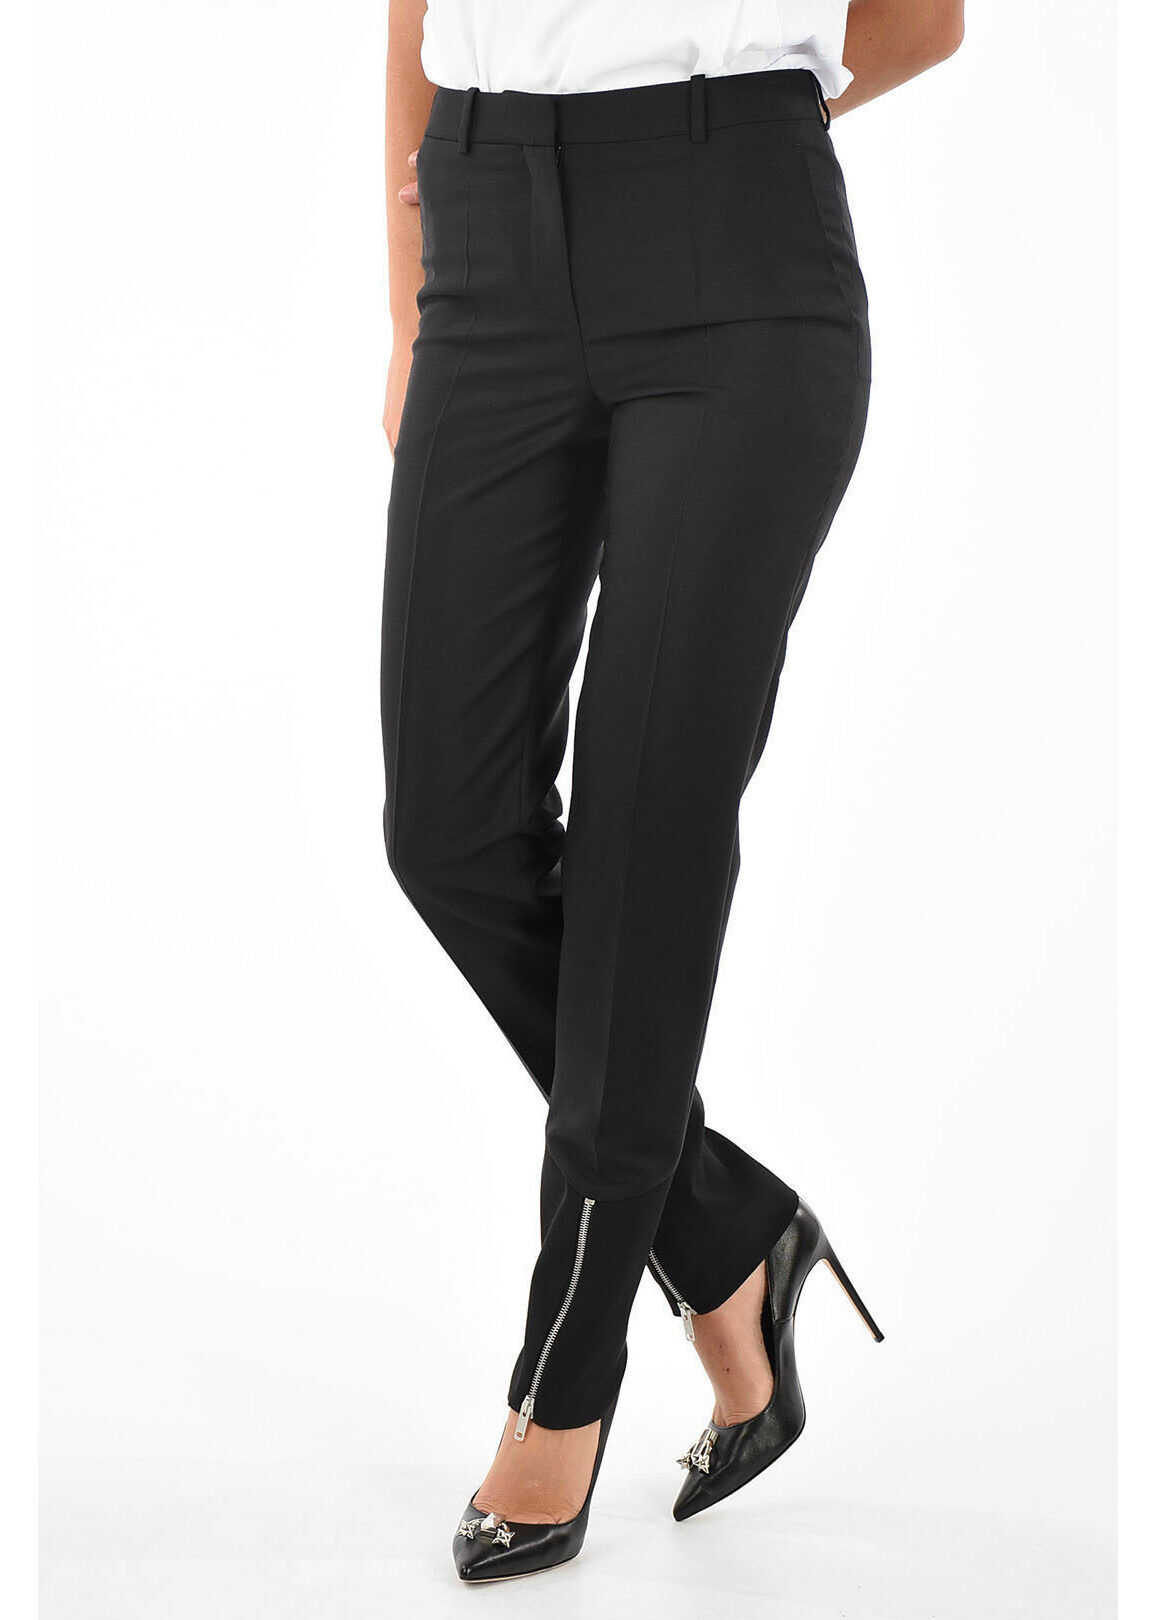 Givenchy Pants with Zip BLACK